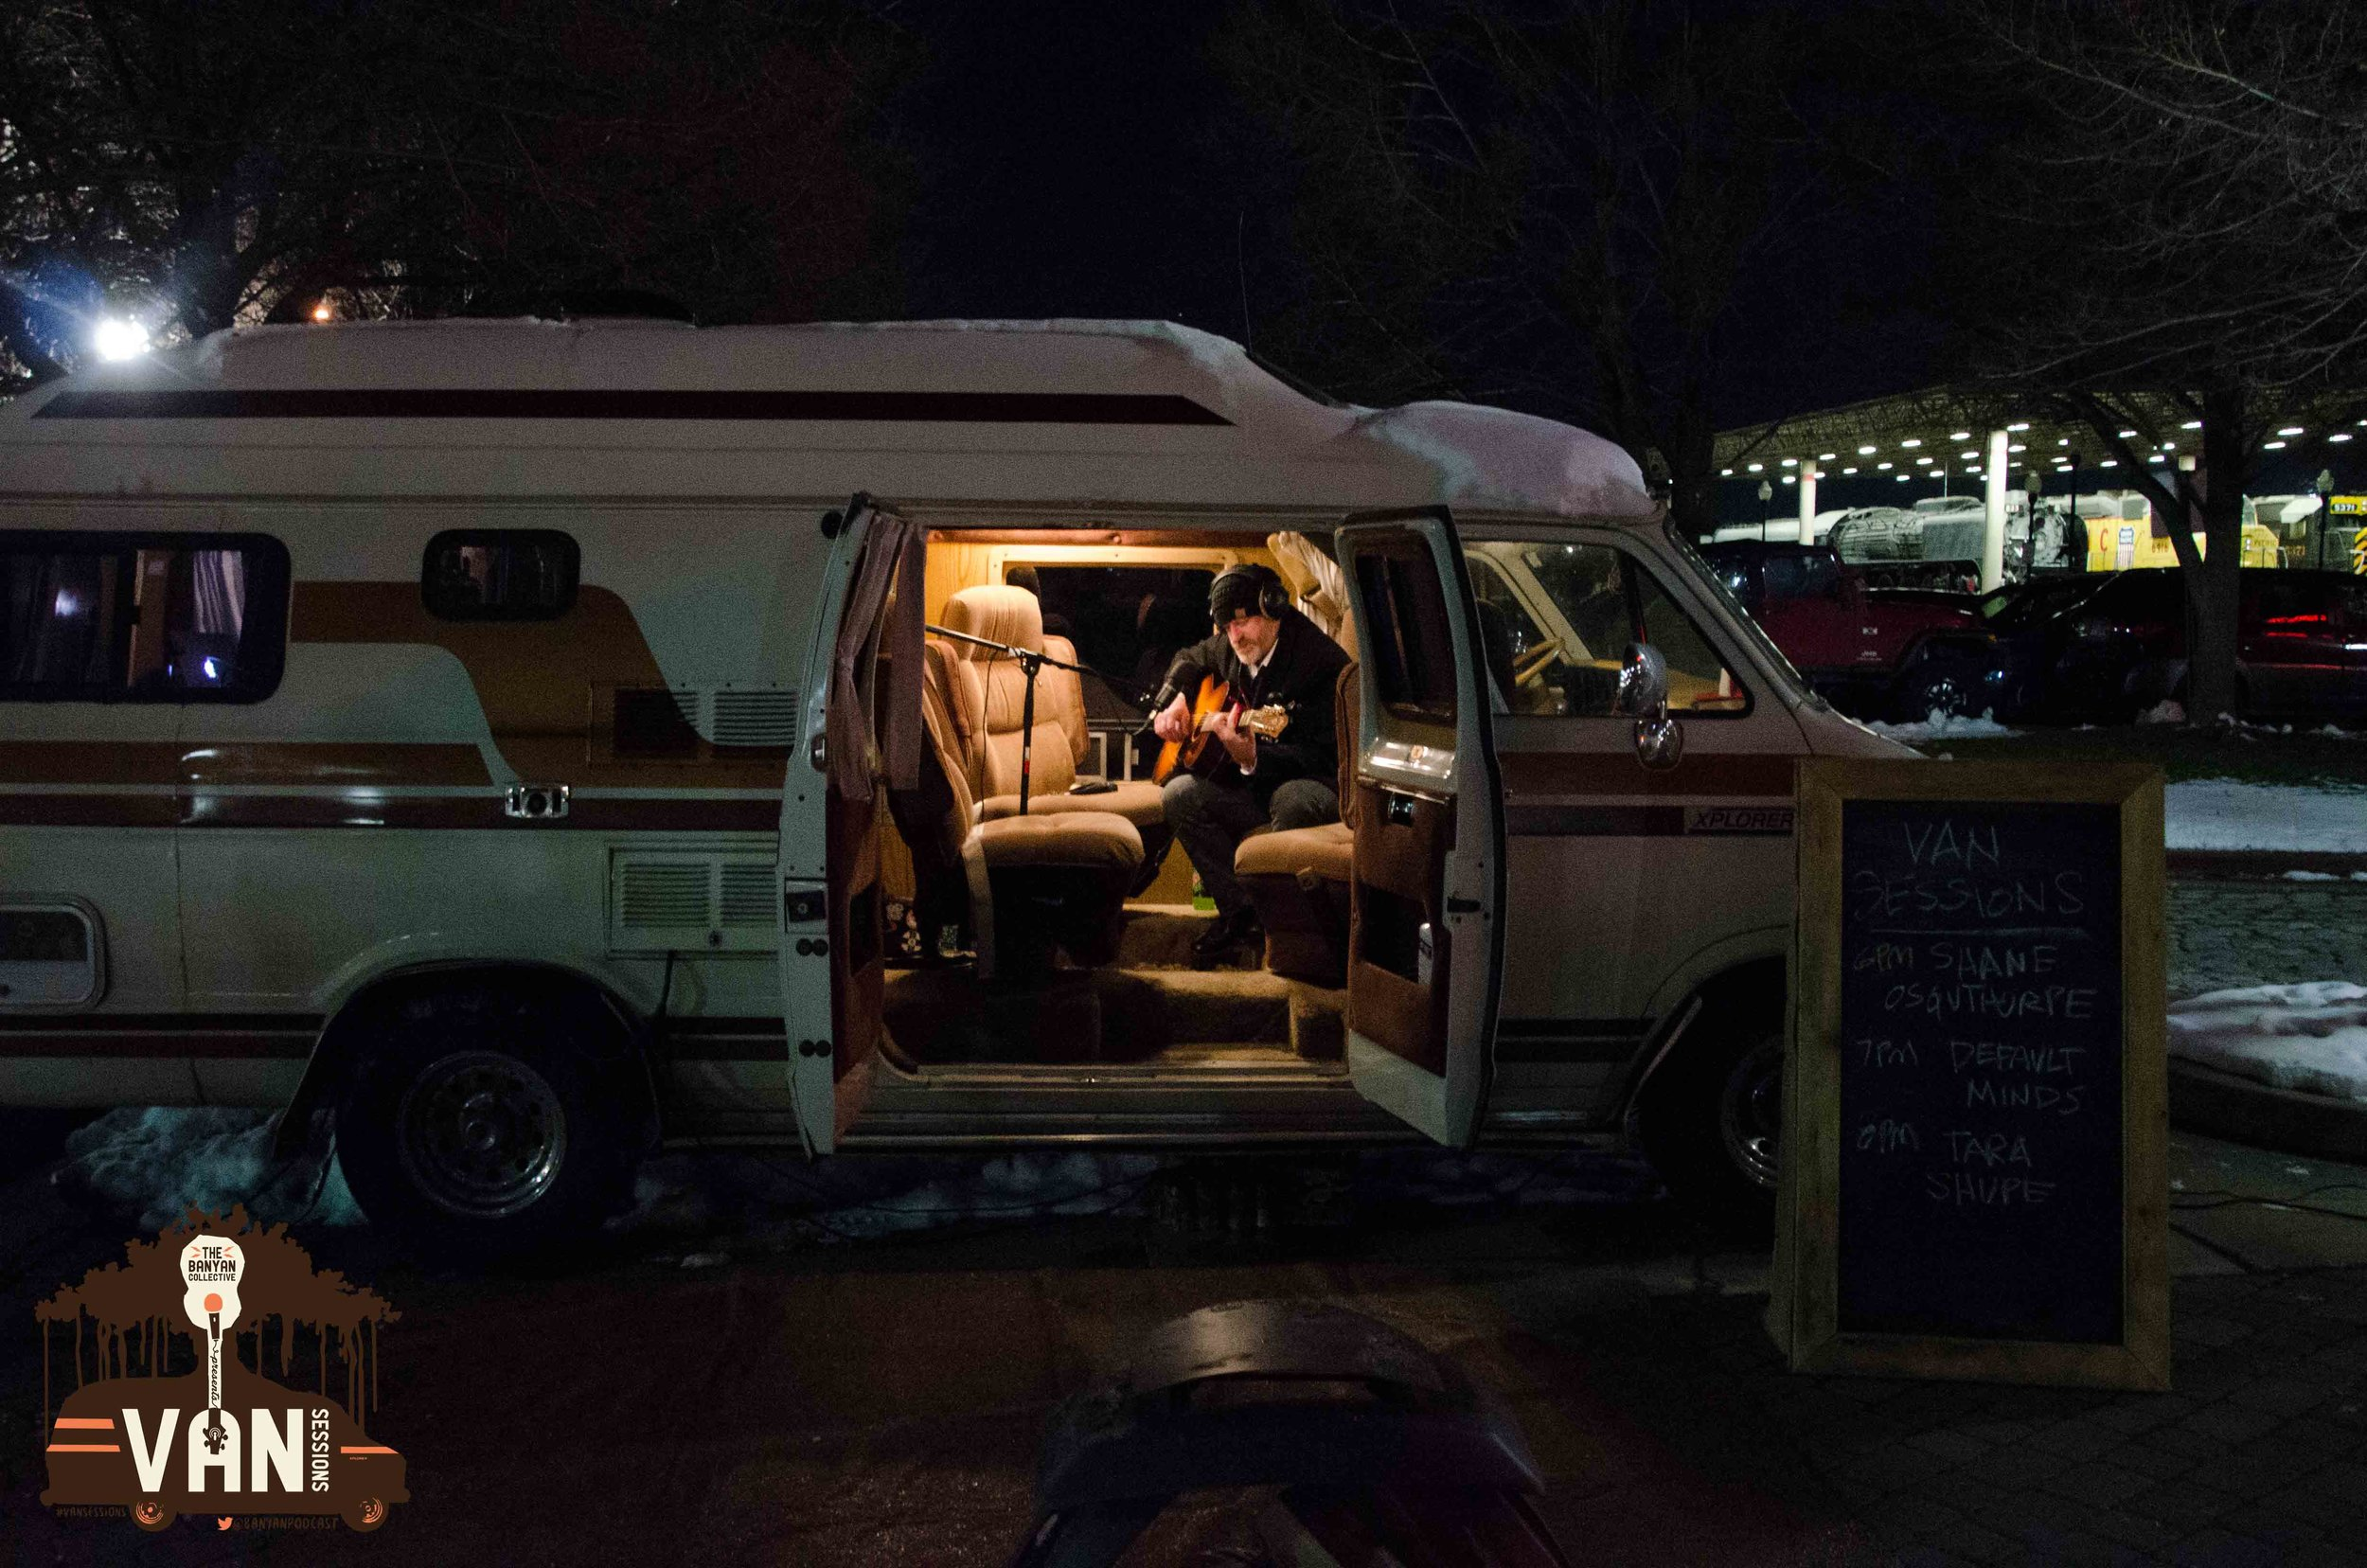 Snow on the Van and Ogden musician, Shane Osguthorpe warming up the crowd from within.